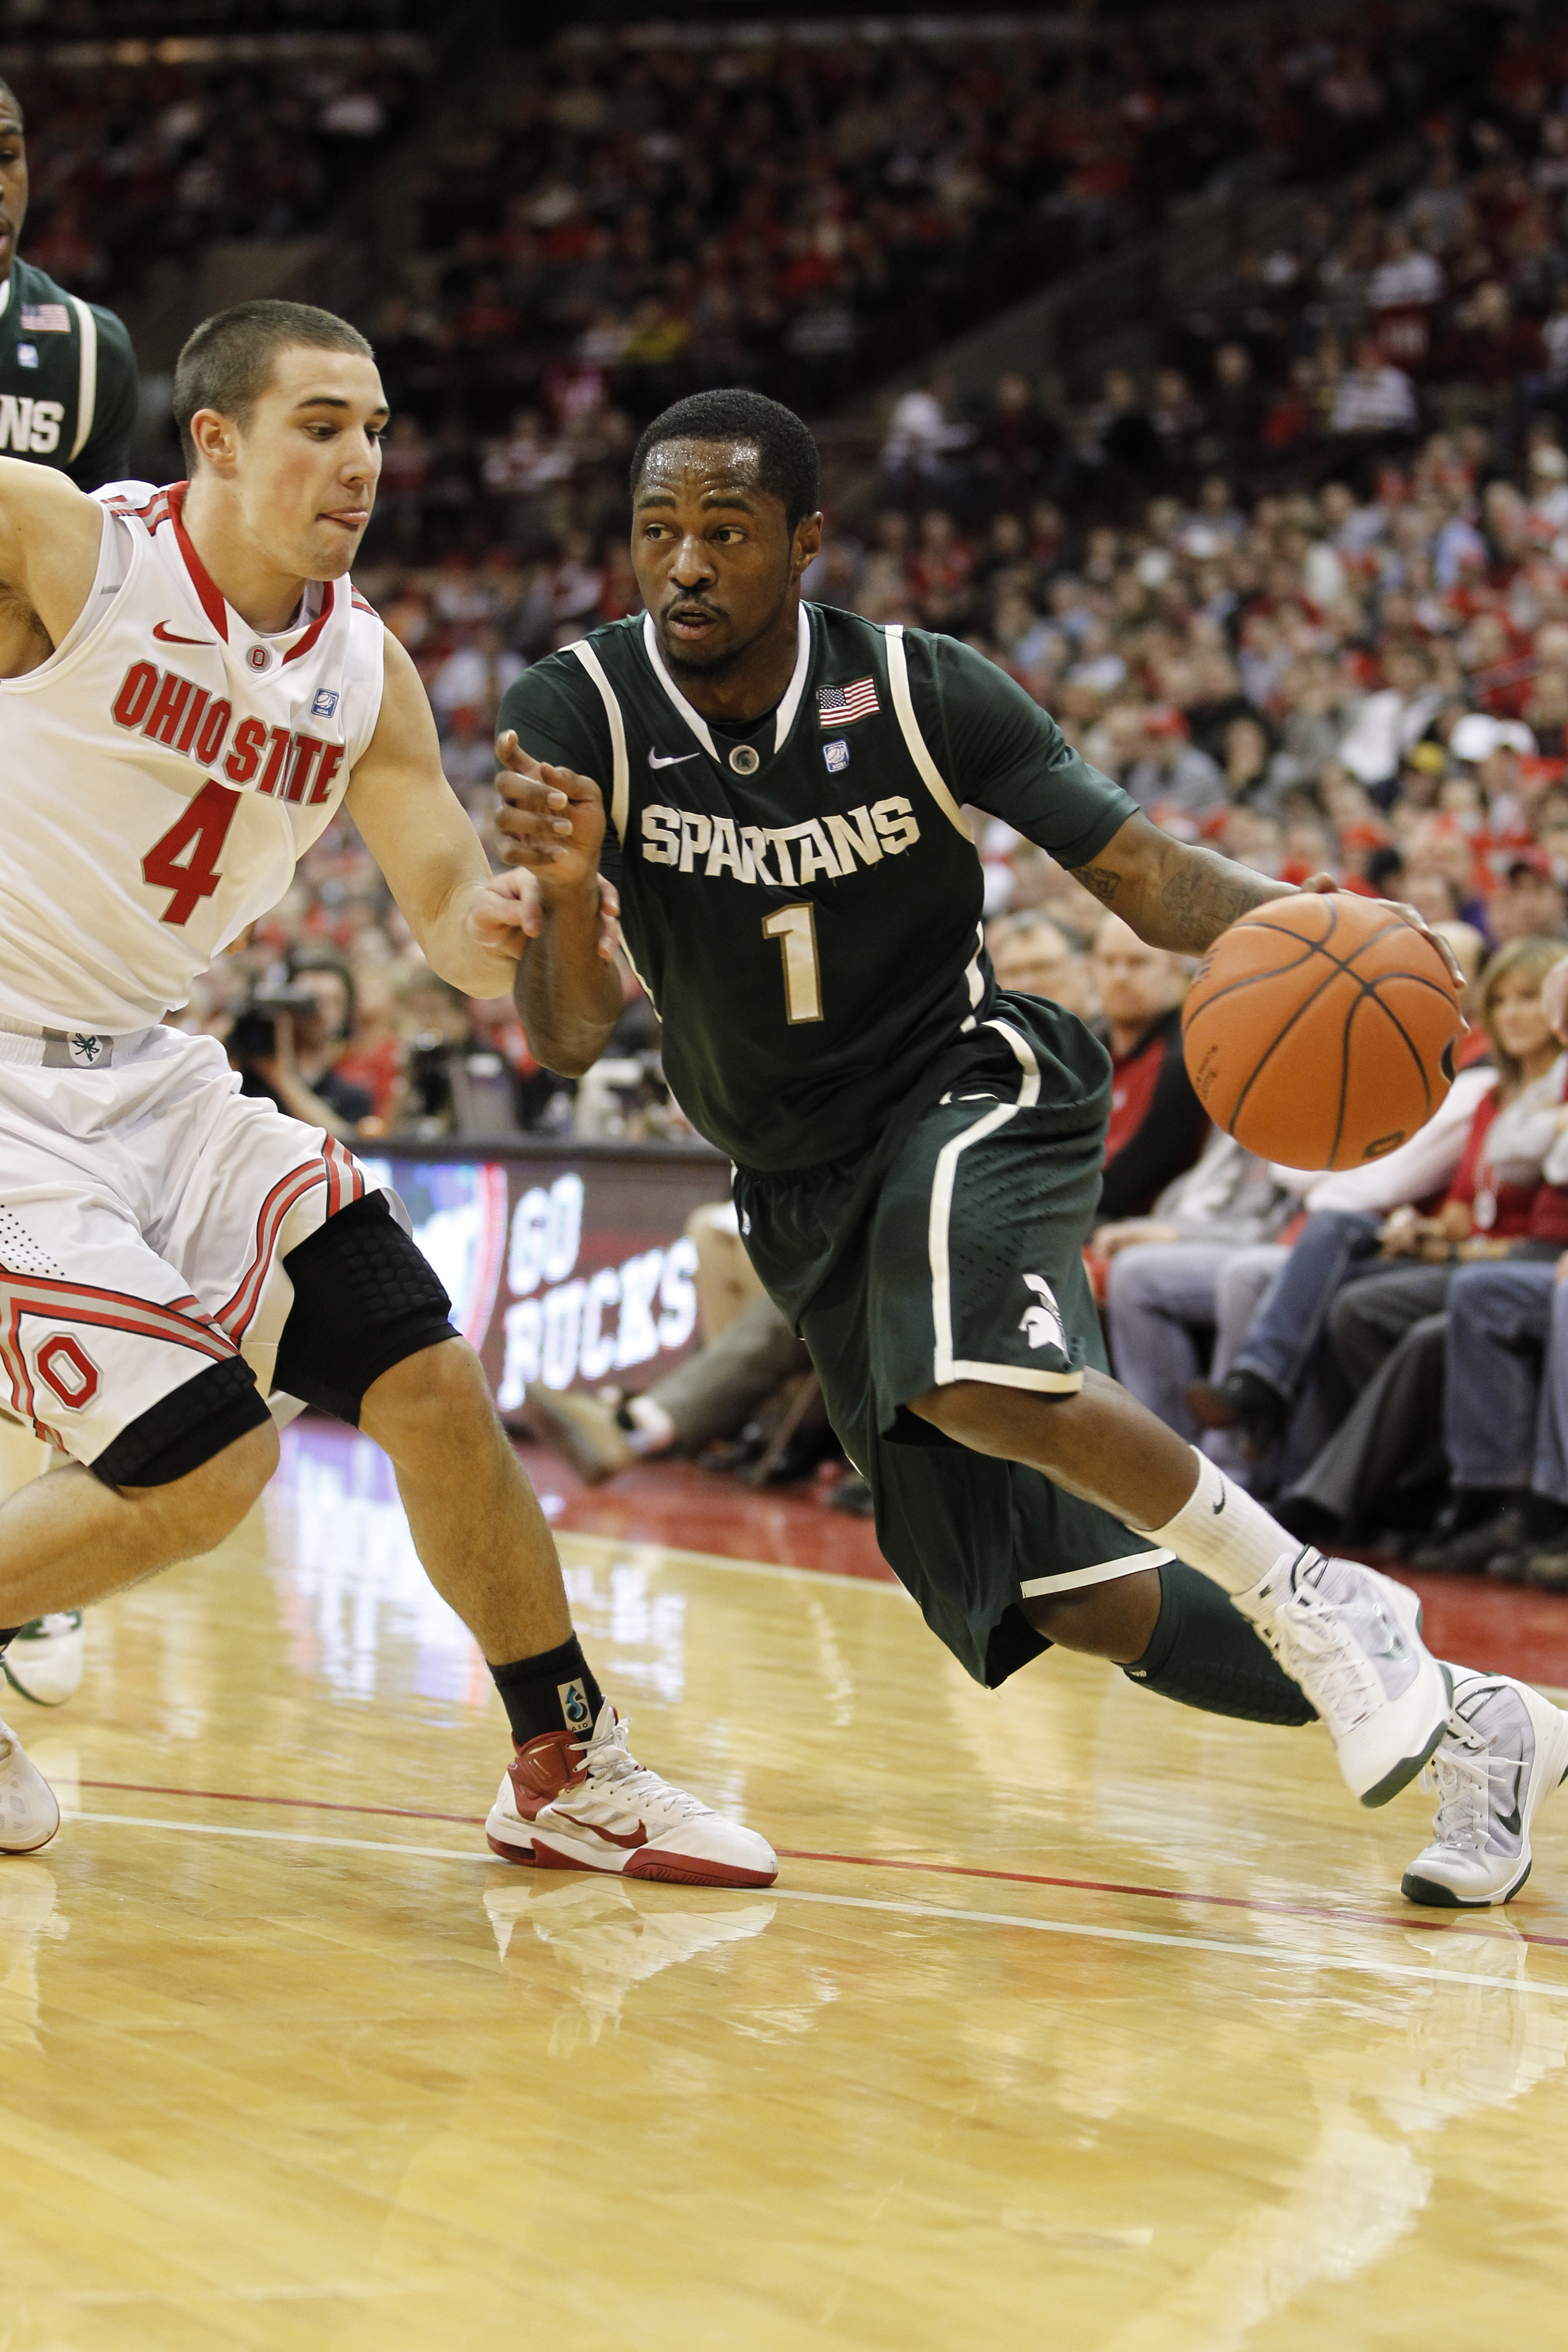 COLUMBUS, OH - FEBRUARY 15:  Kalin Lucas #1 of the Michigan State Spartans controls the ball while playing  the Ohio State Buckues on February 15, 2011 at Value City Arena in Columbus, Ohio.  (Photo by Gregory Shamus/Getty Images)